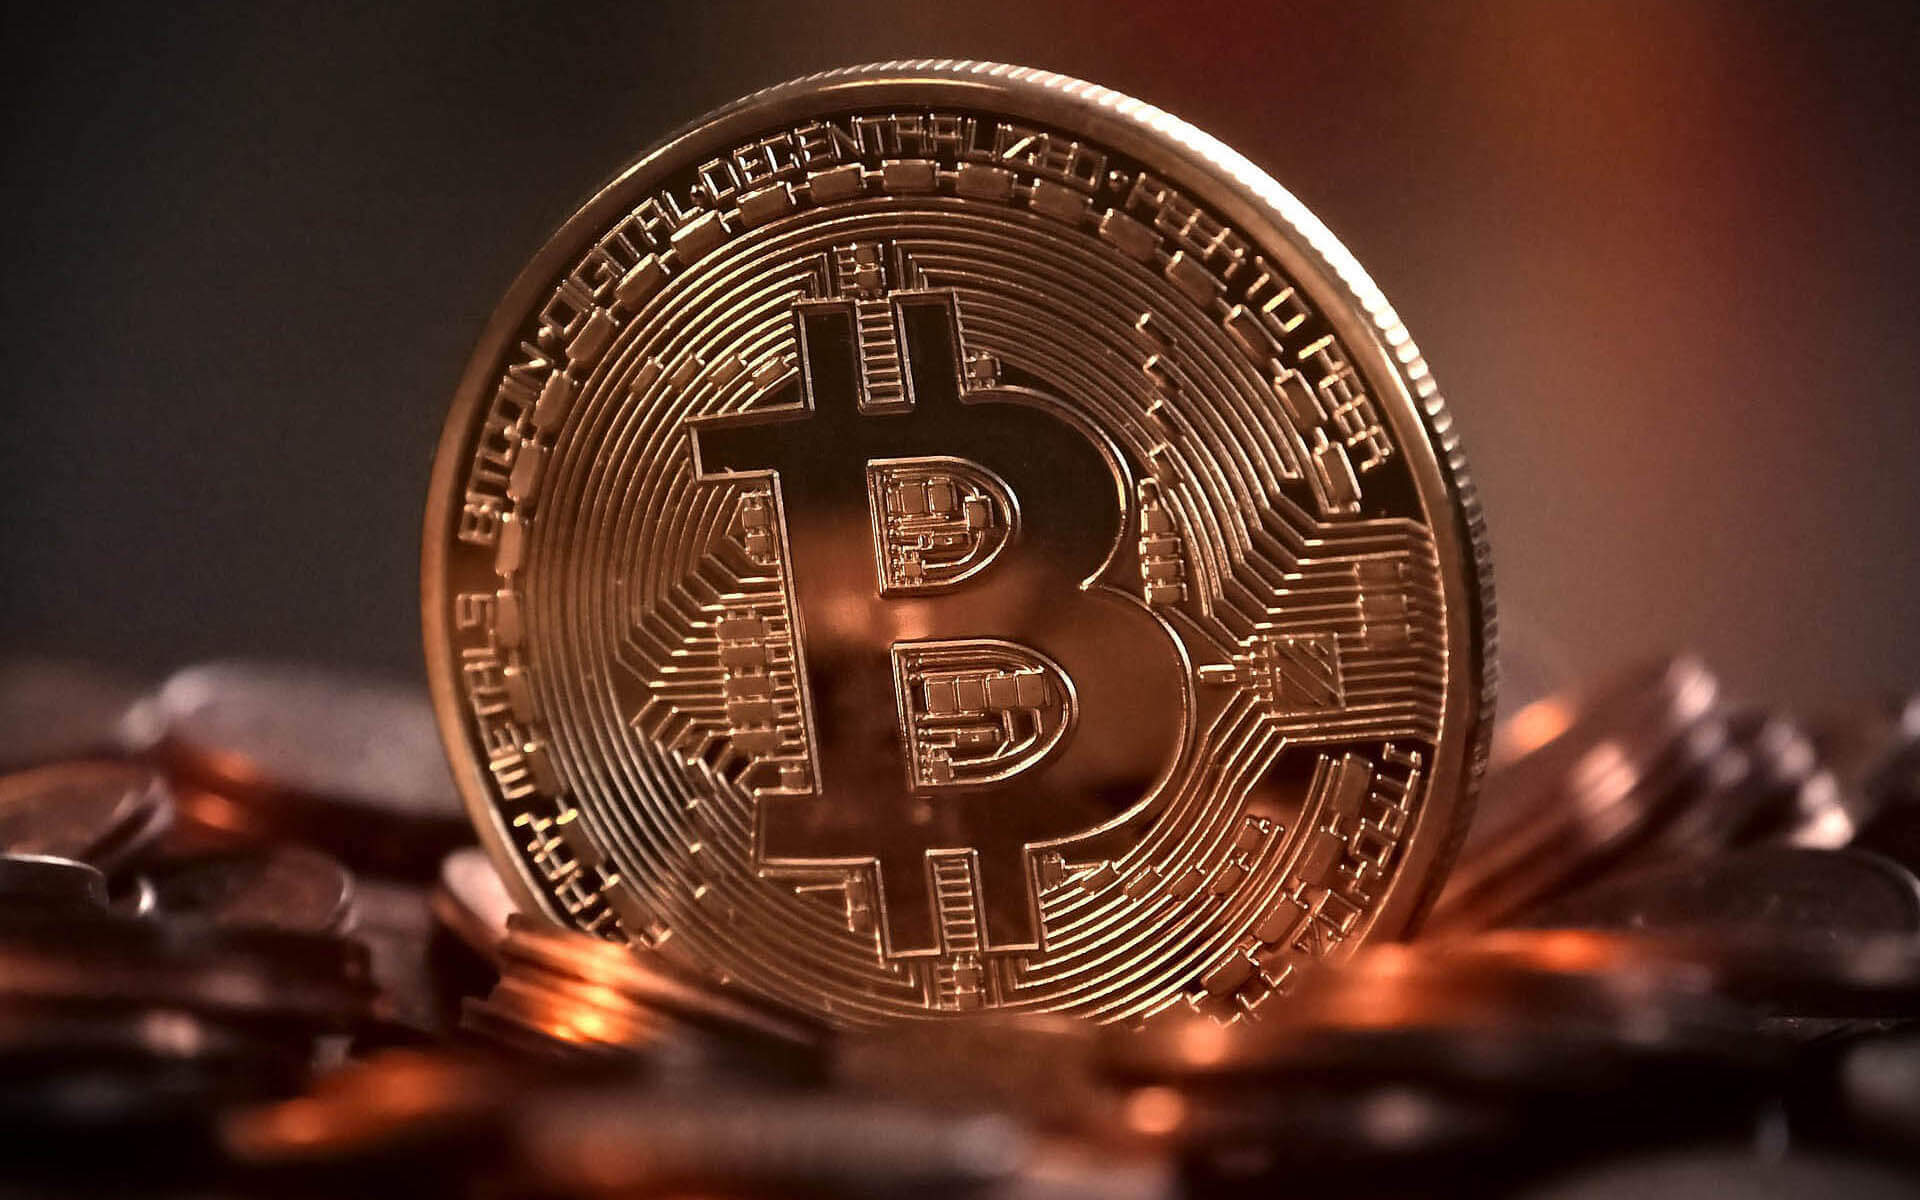 The price of Bitcoin will multiply